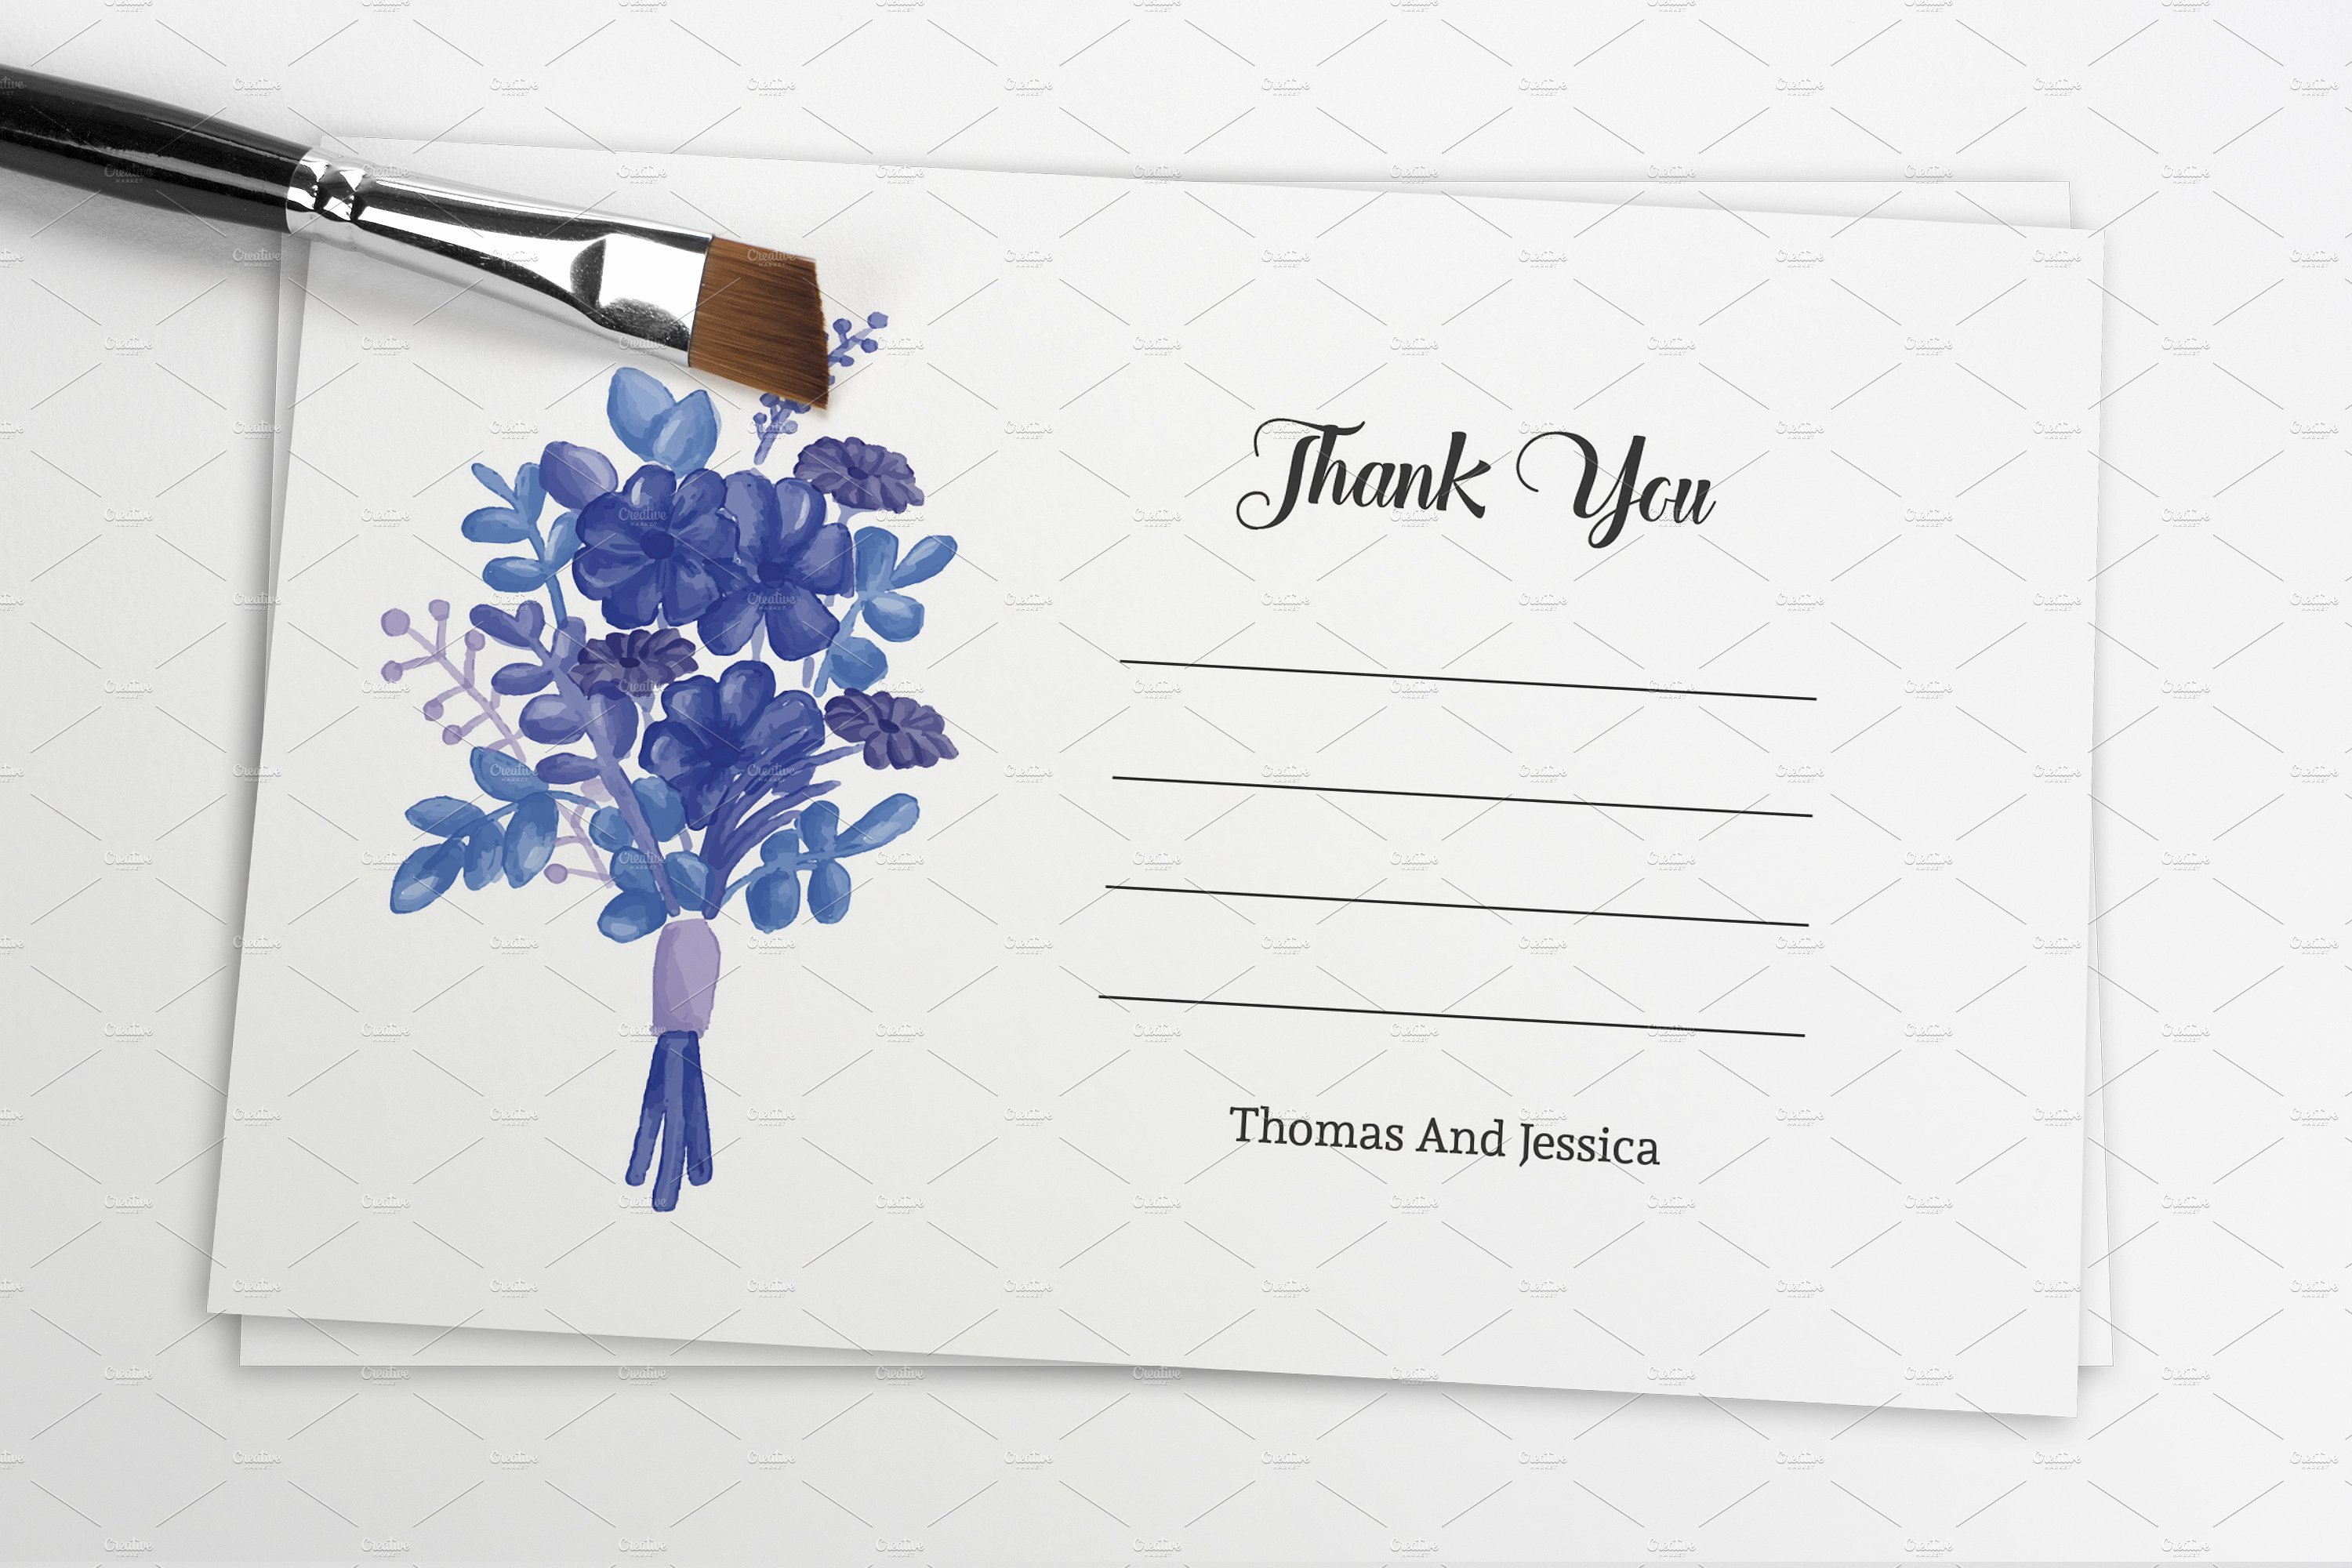 Wedding Thank You Card Template Best Of Wedding Thank You Card Template Wedding Templates